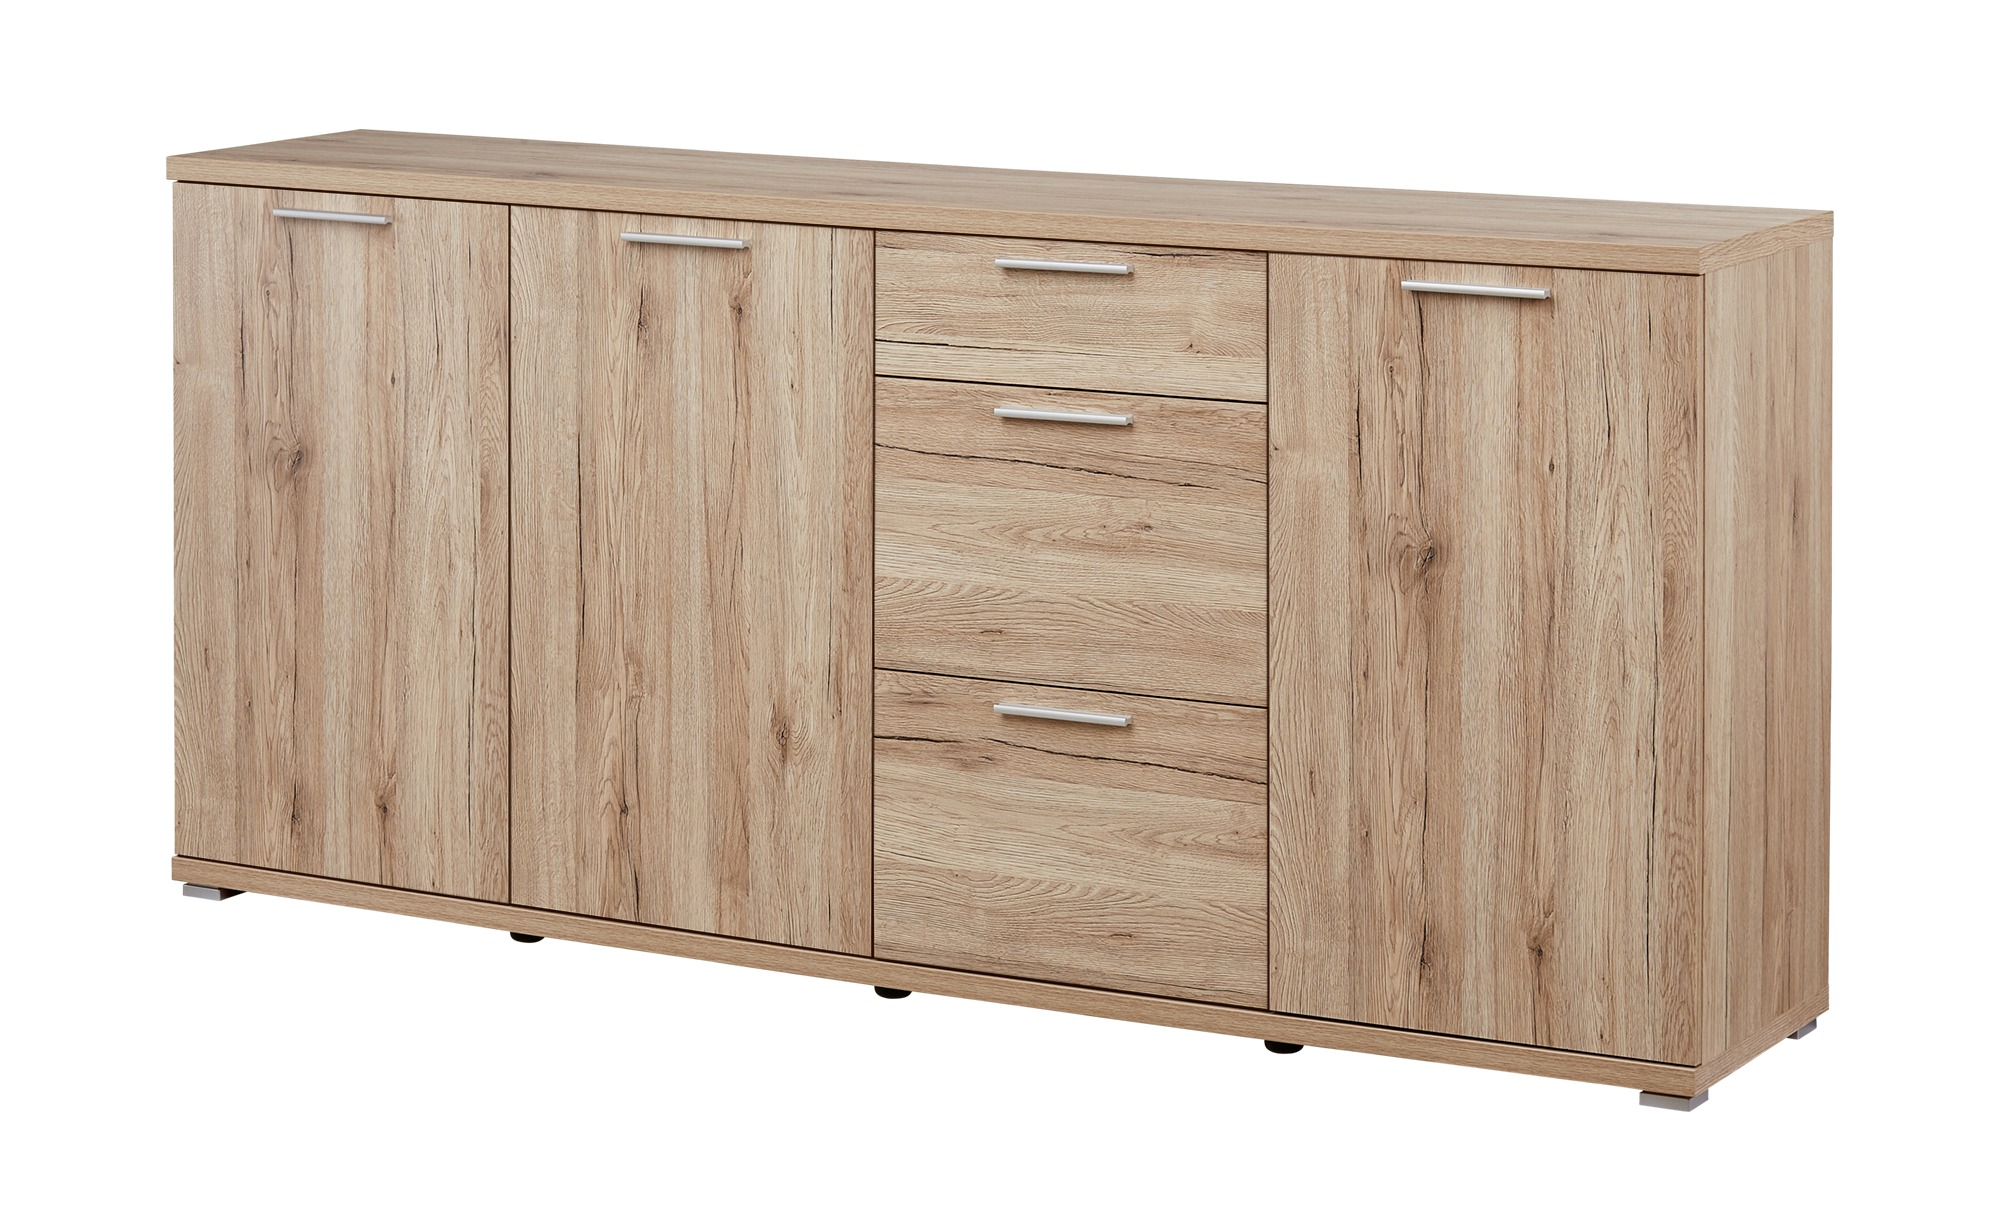 uno sideboard boult breite 192 cm h he 88 cm holzfarben. Black Bedroom Furniture Sets. Home Design Ideas